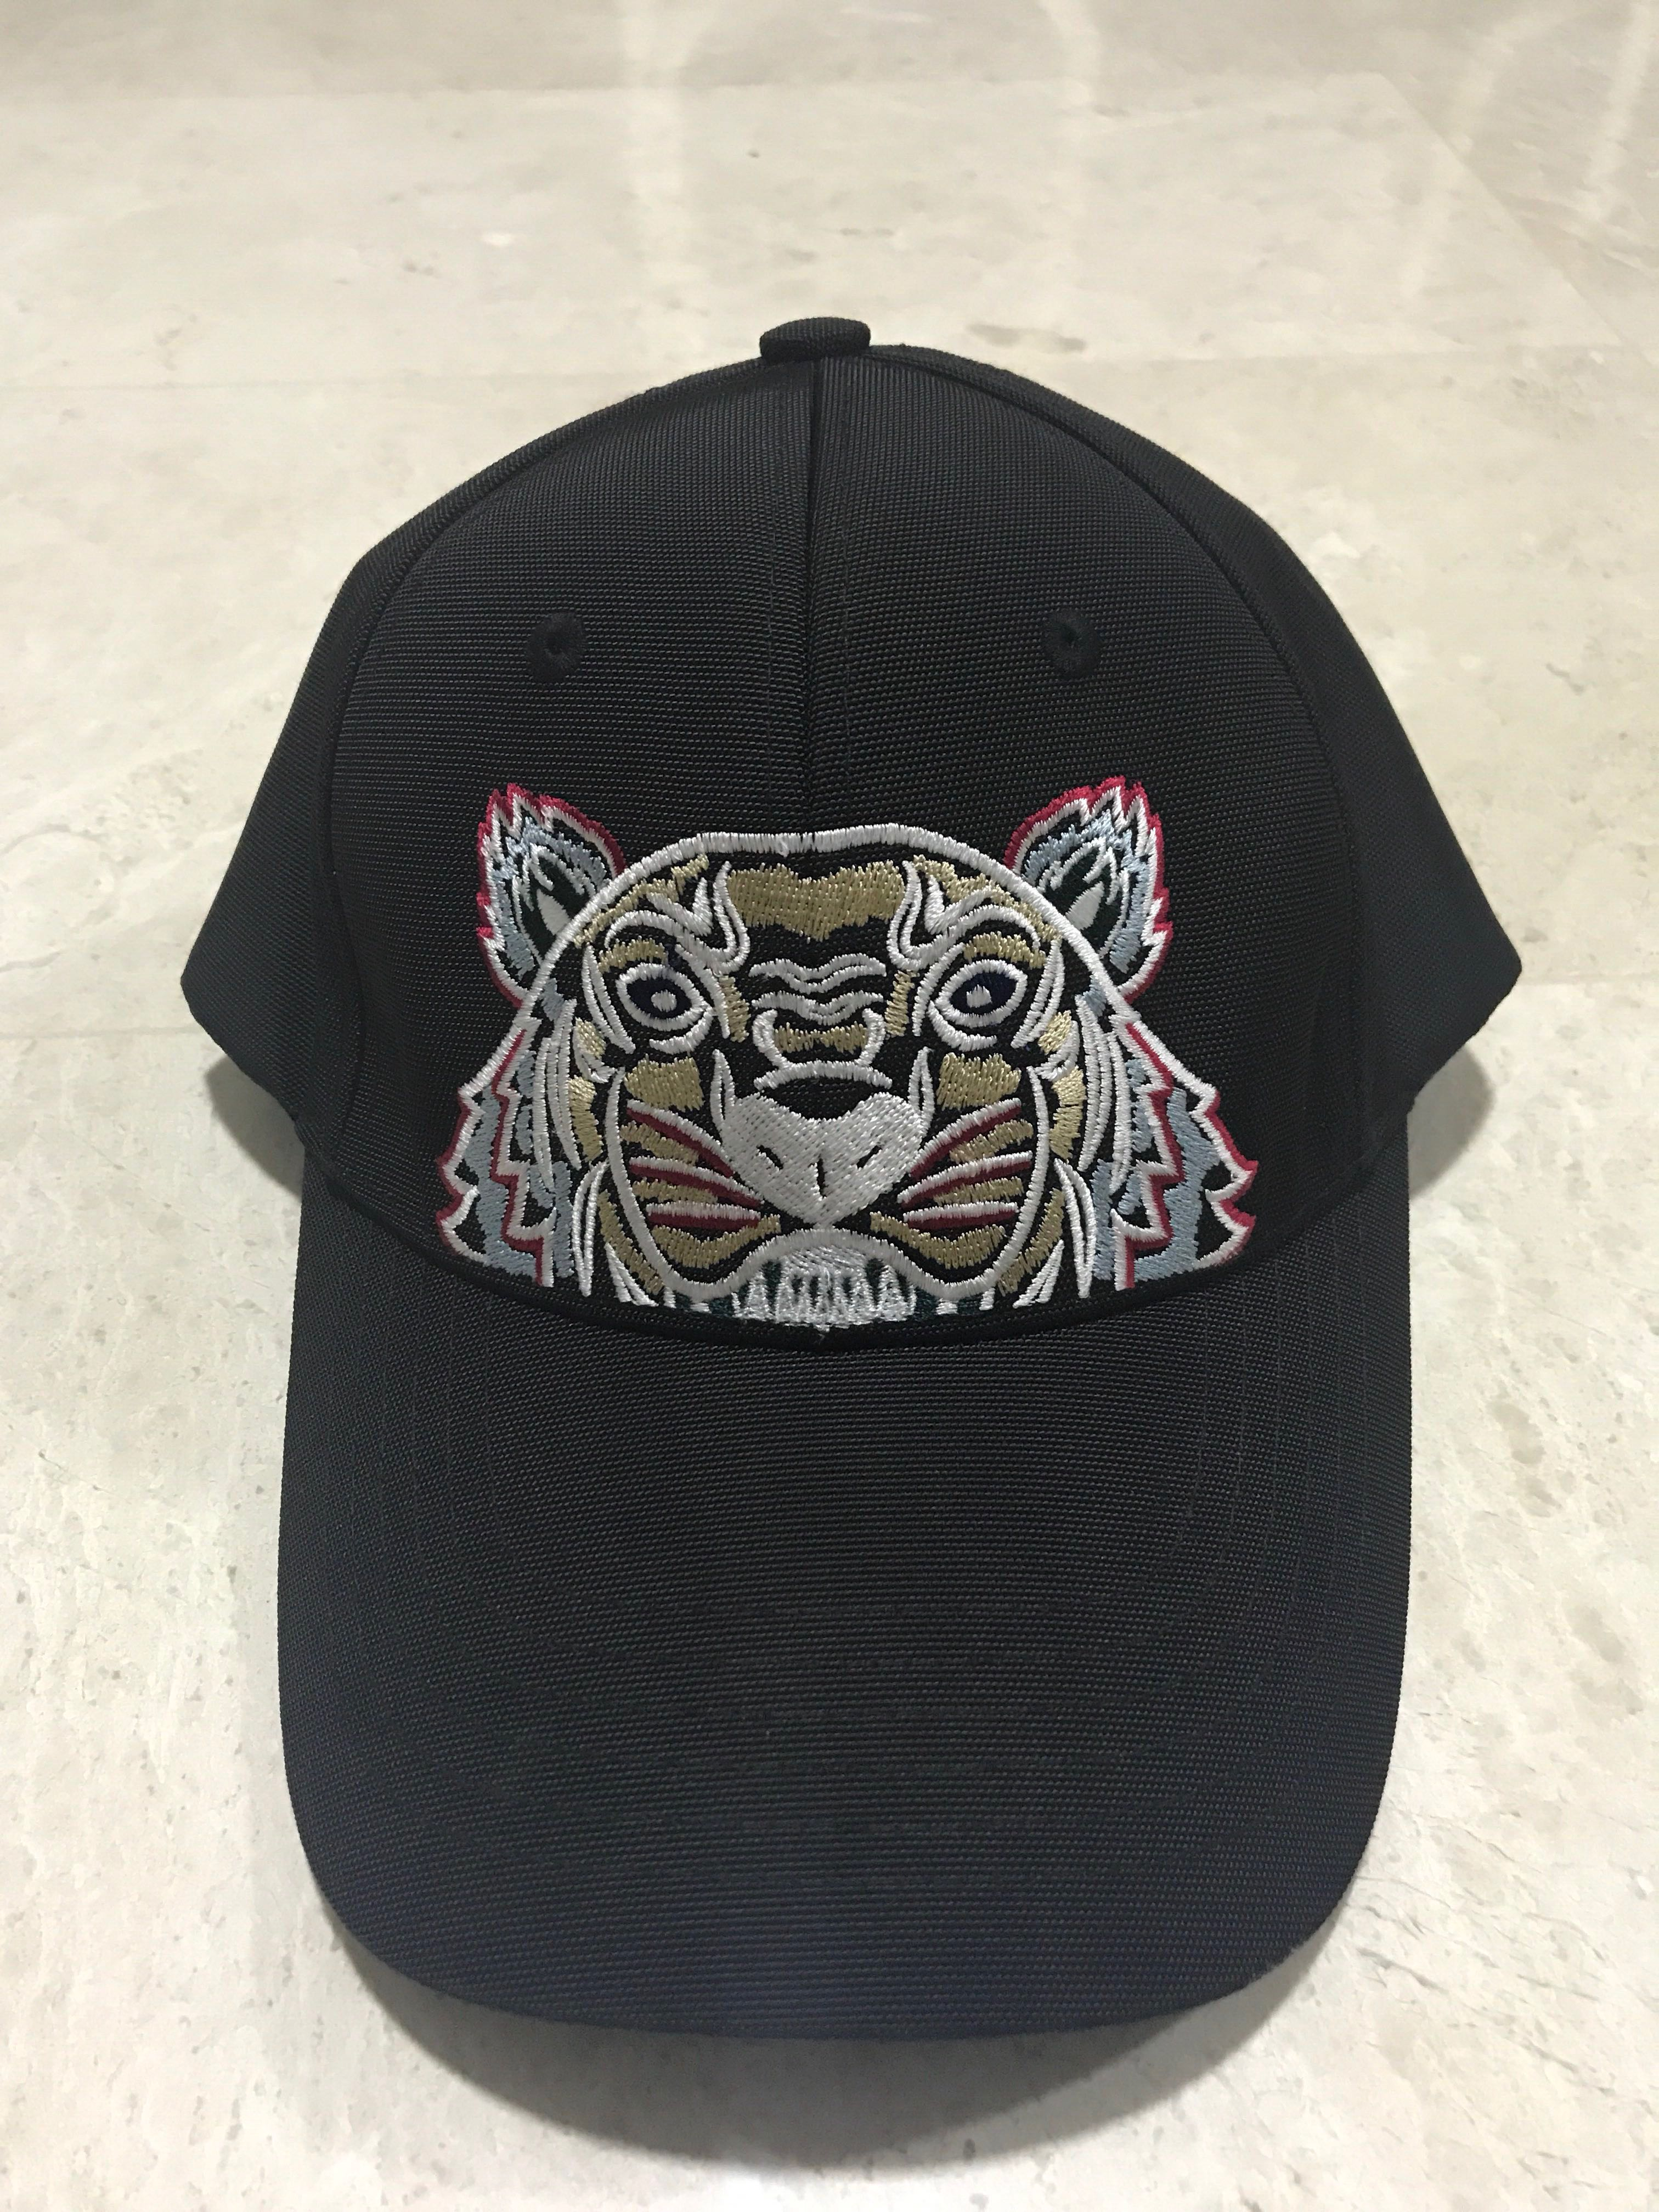 abf721943 Kenzo Tiger Cap, Men's Fashion, Accessories, Caps & Hats on Carousell